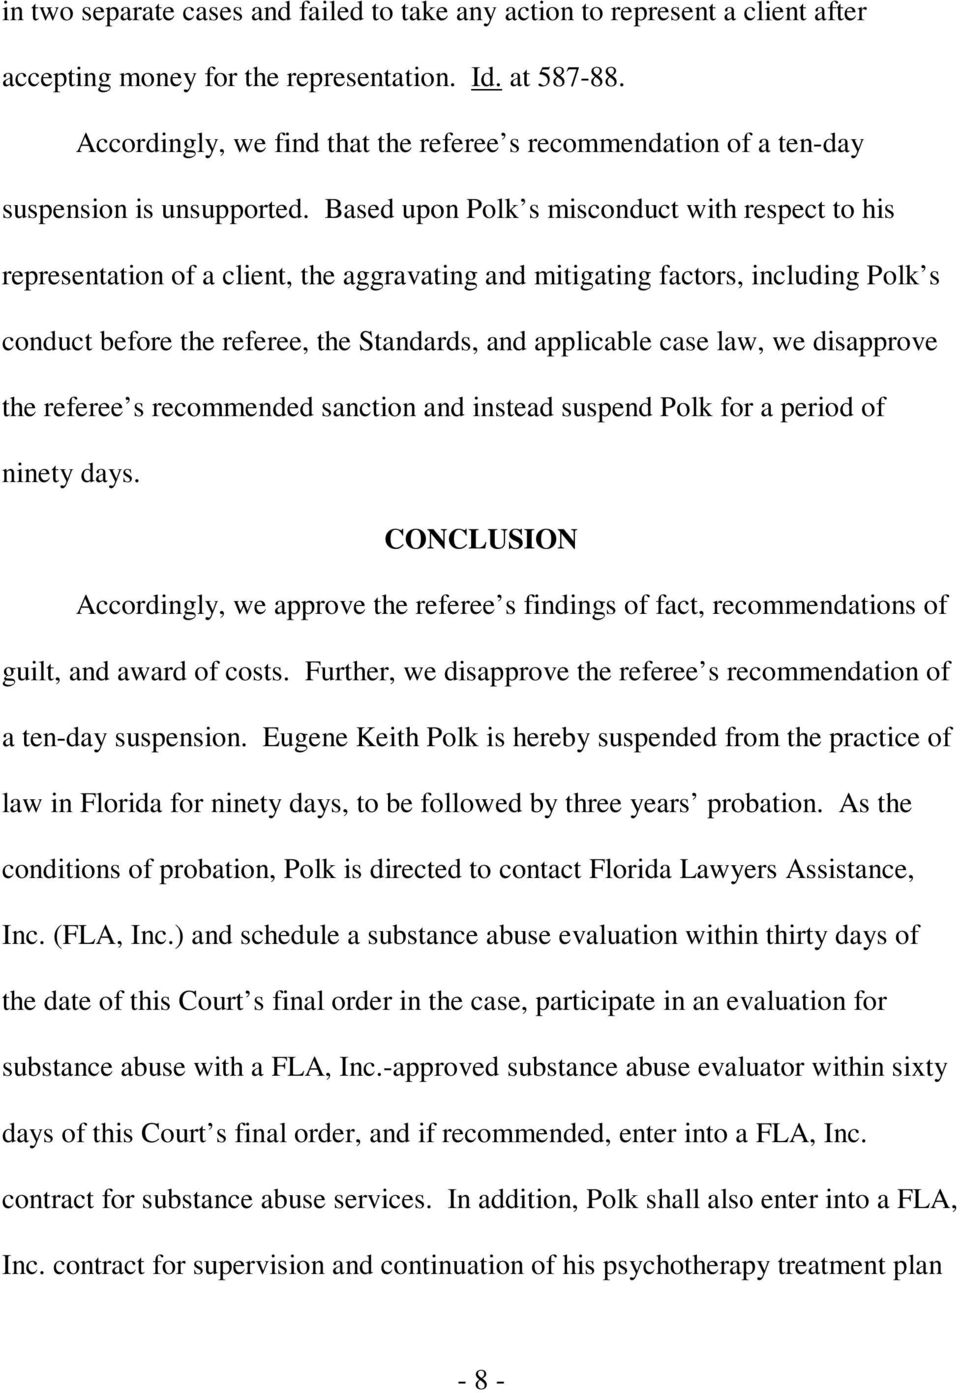 Based upon Polk s misconduct with respect to his representation of a client, the aggravating and mitigating factors, including Polk s conduct before the referee, the Standards, and applicable case